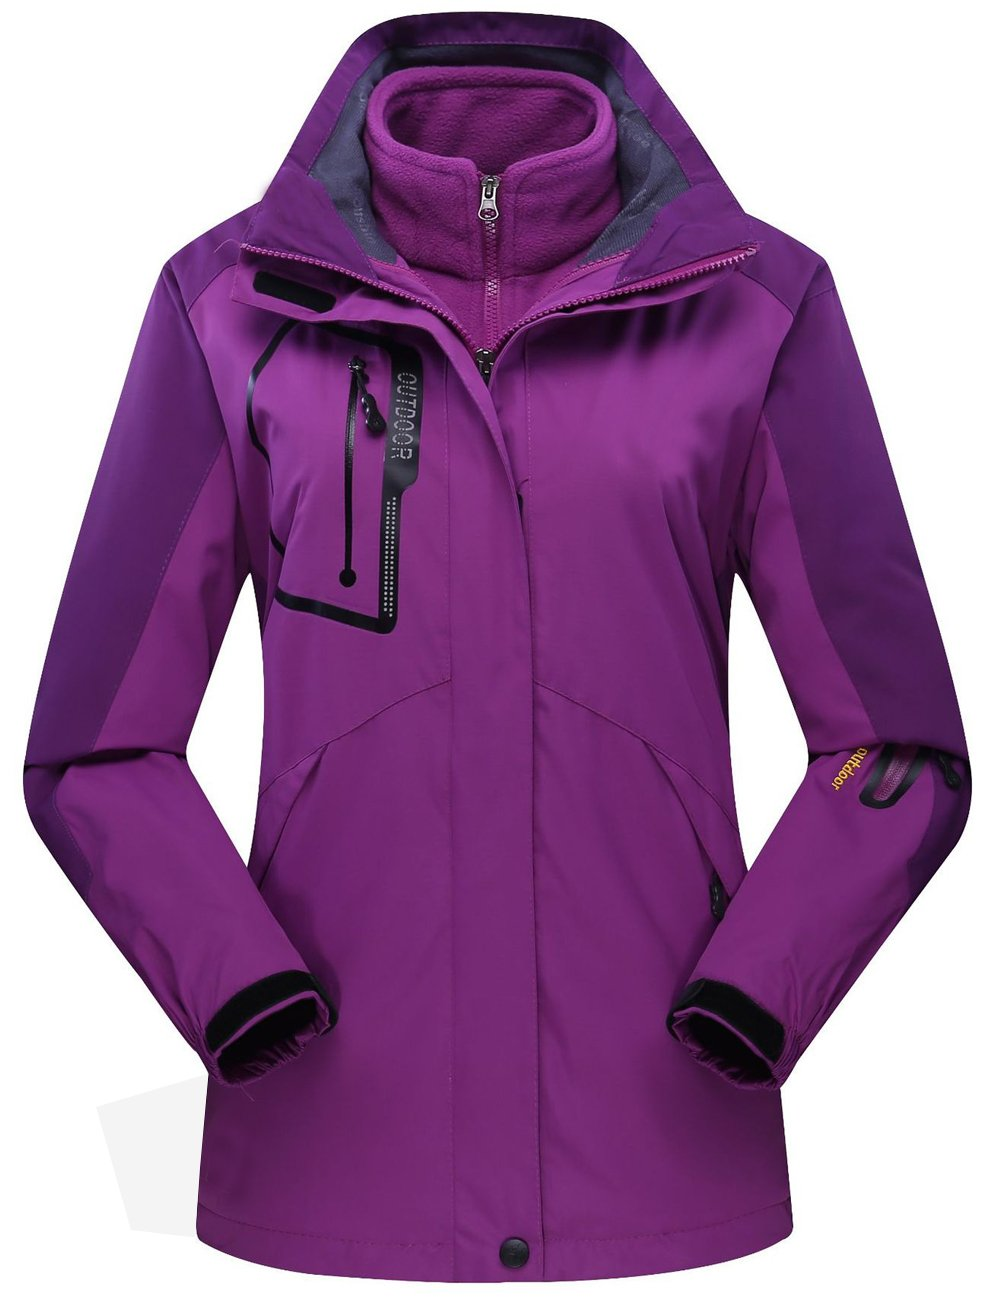 CUKKE OUTERWEAR レディース B0785H7THS S|Purple Nv1201a Purple Nv1201a S